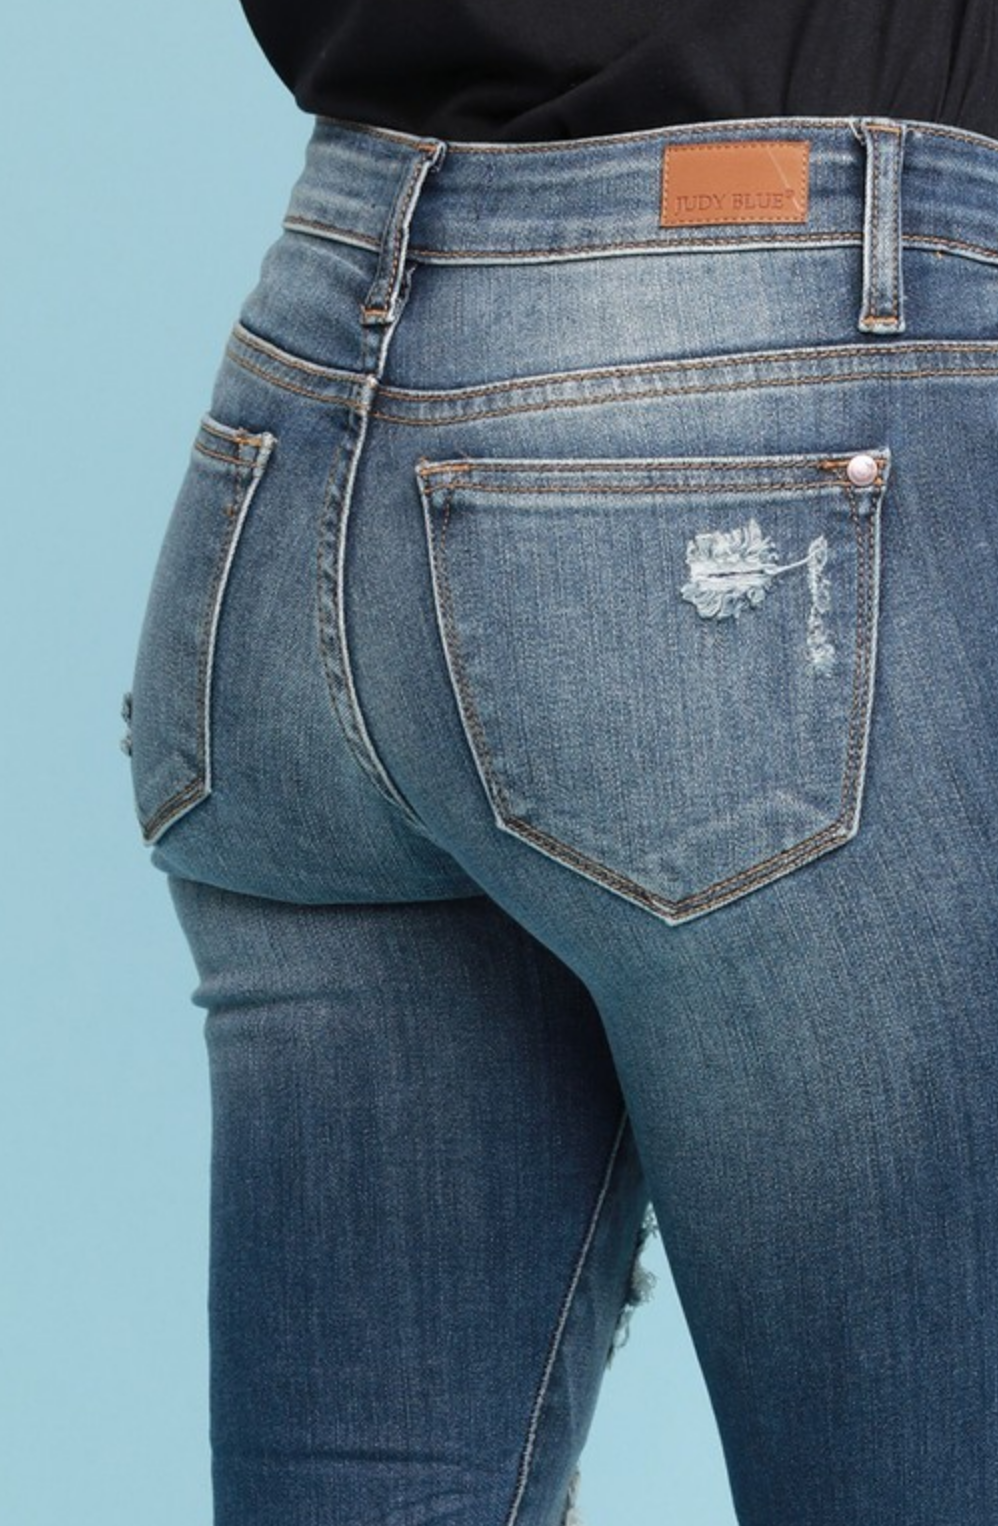 Judy Blue No Time To Waste Jeans